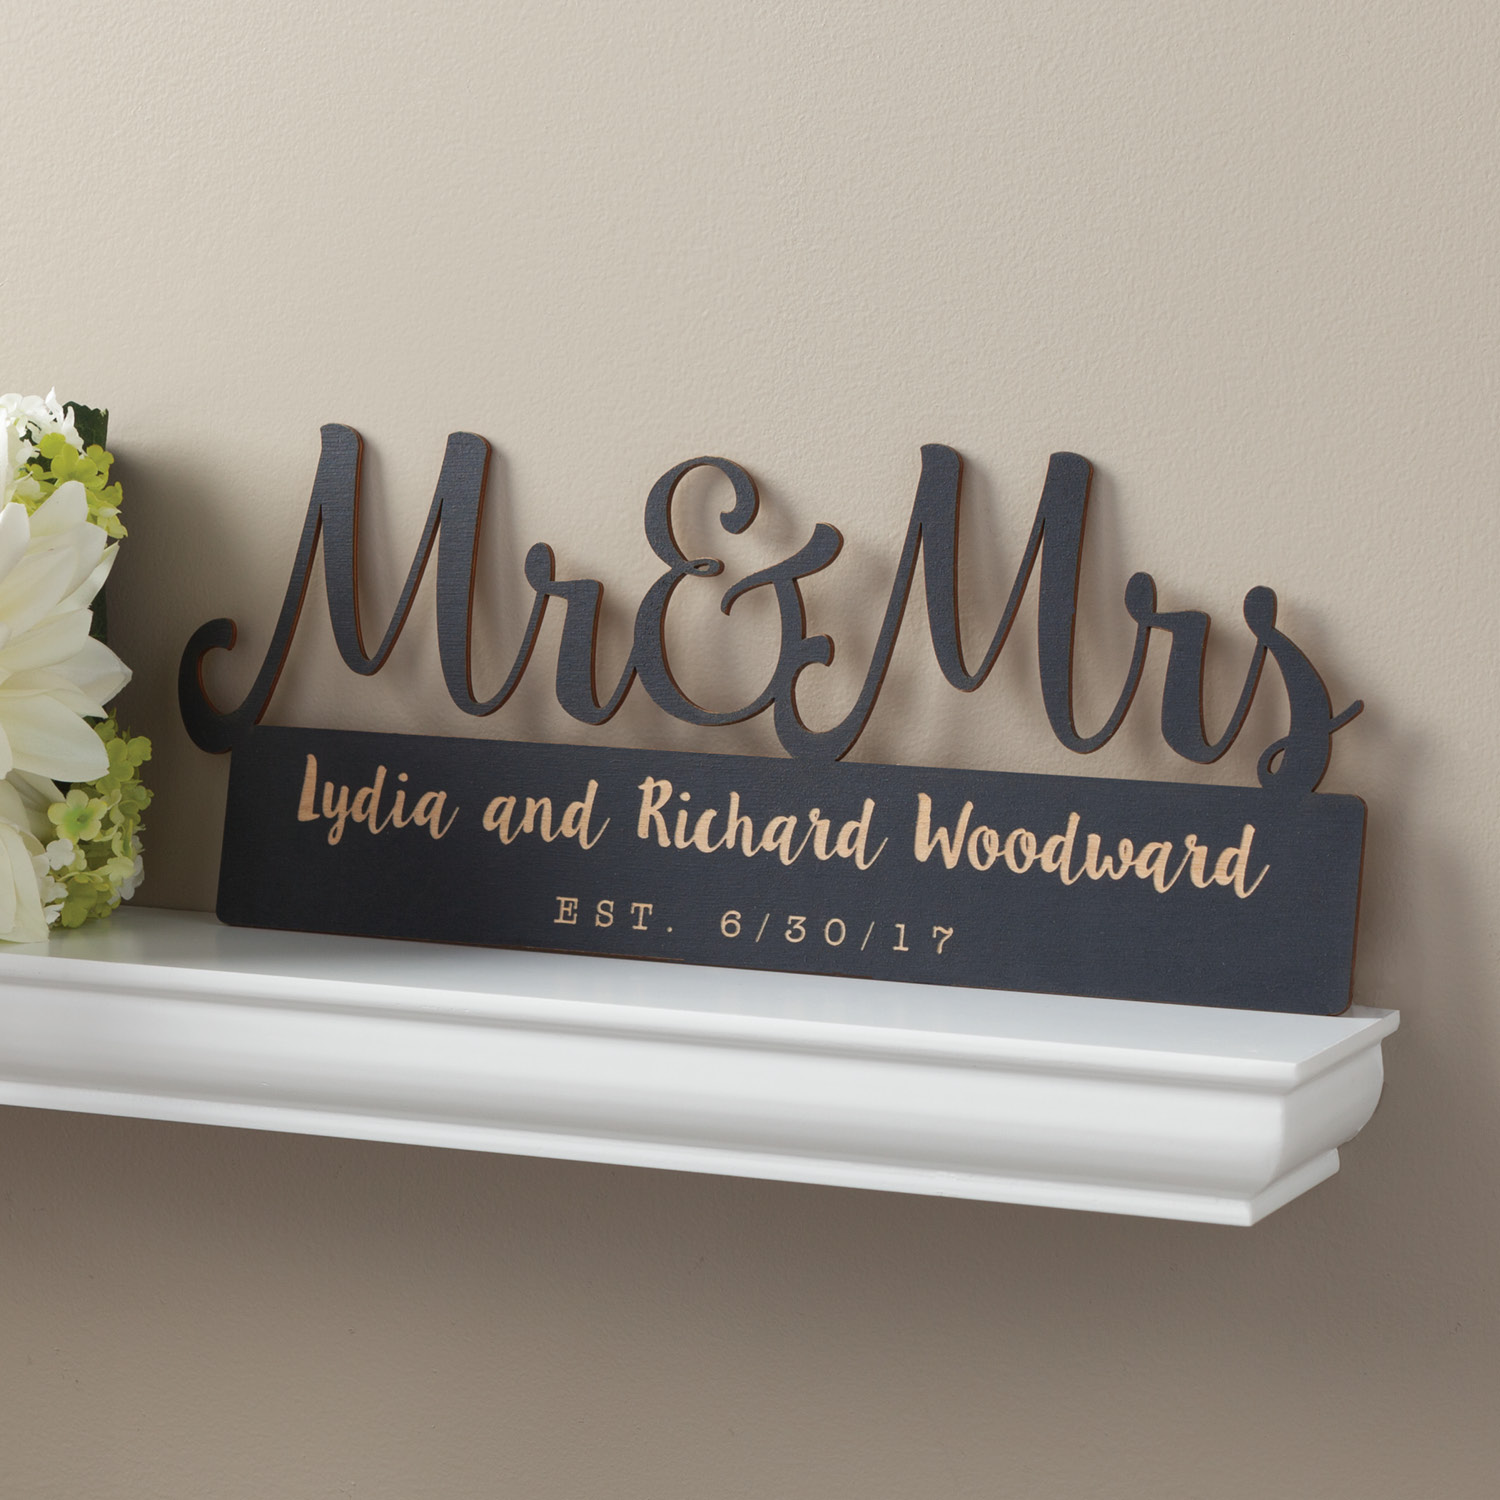 Personalized Black Wood Plaque - Mr. and Mrs.